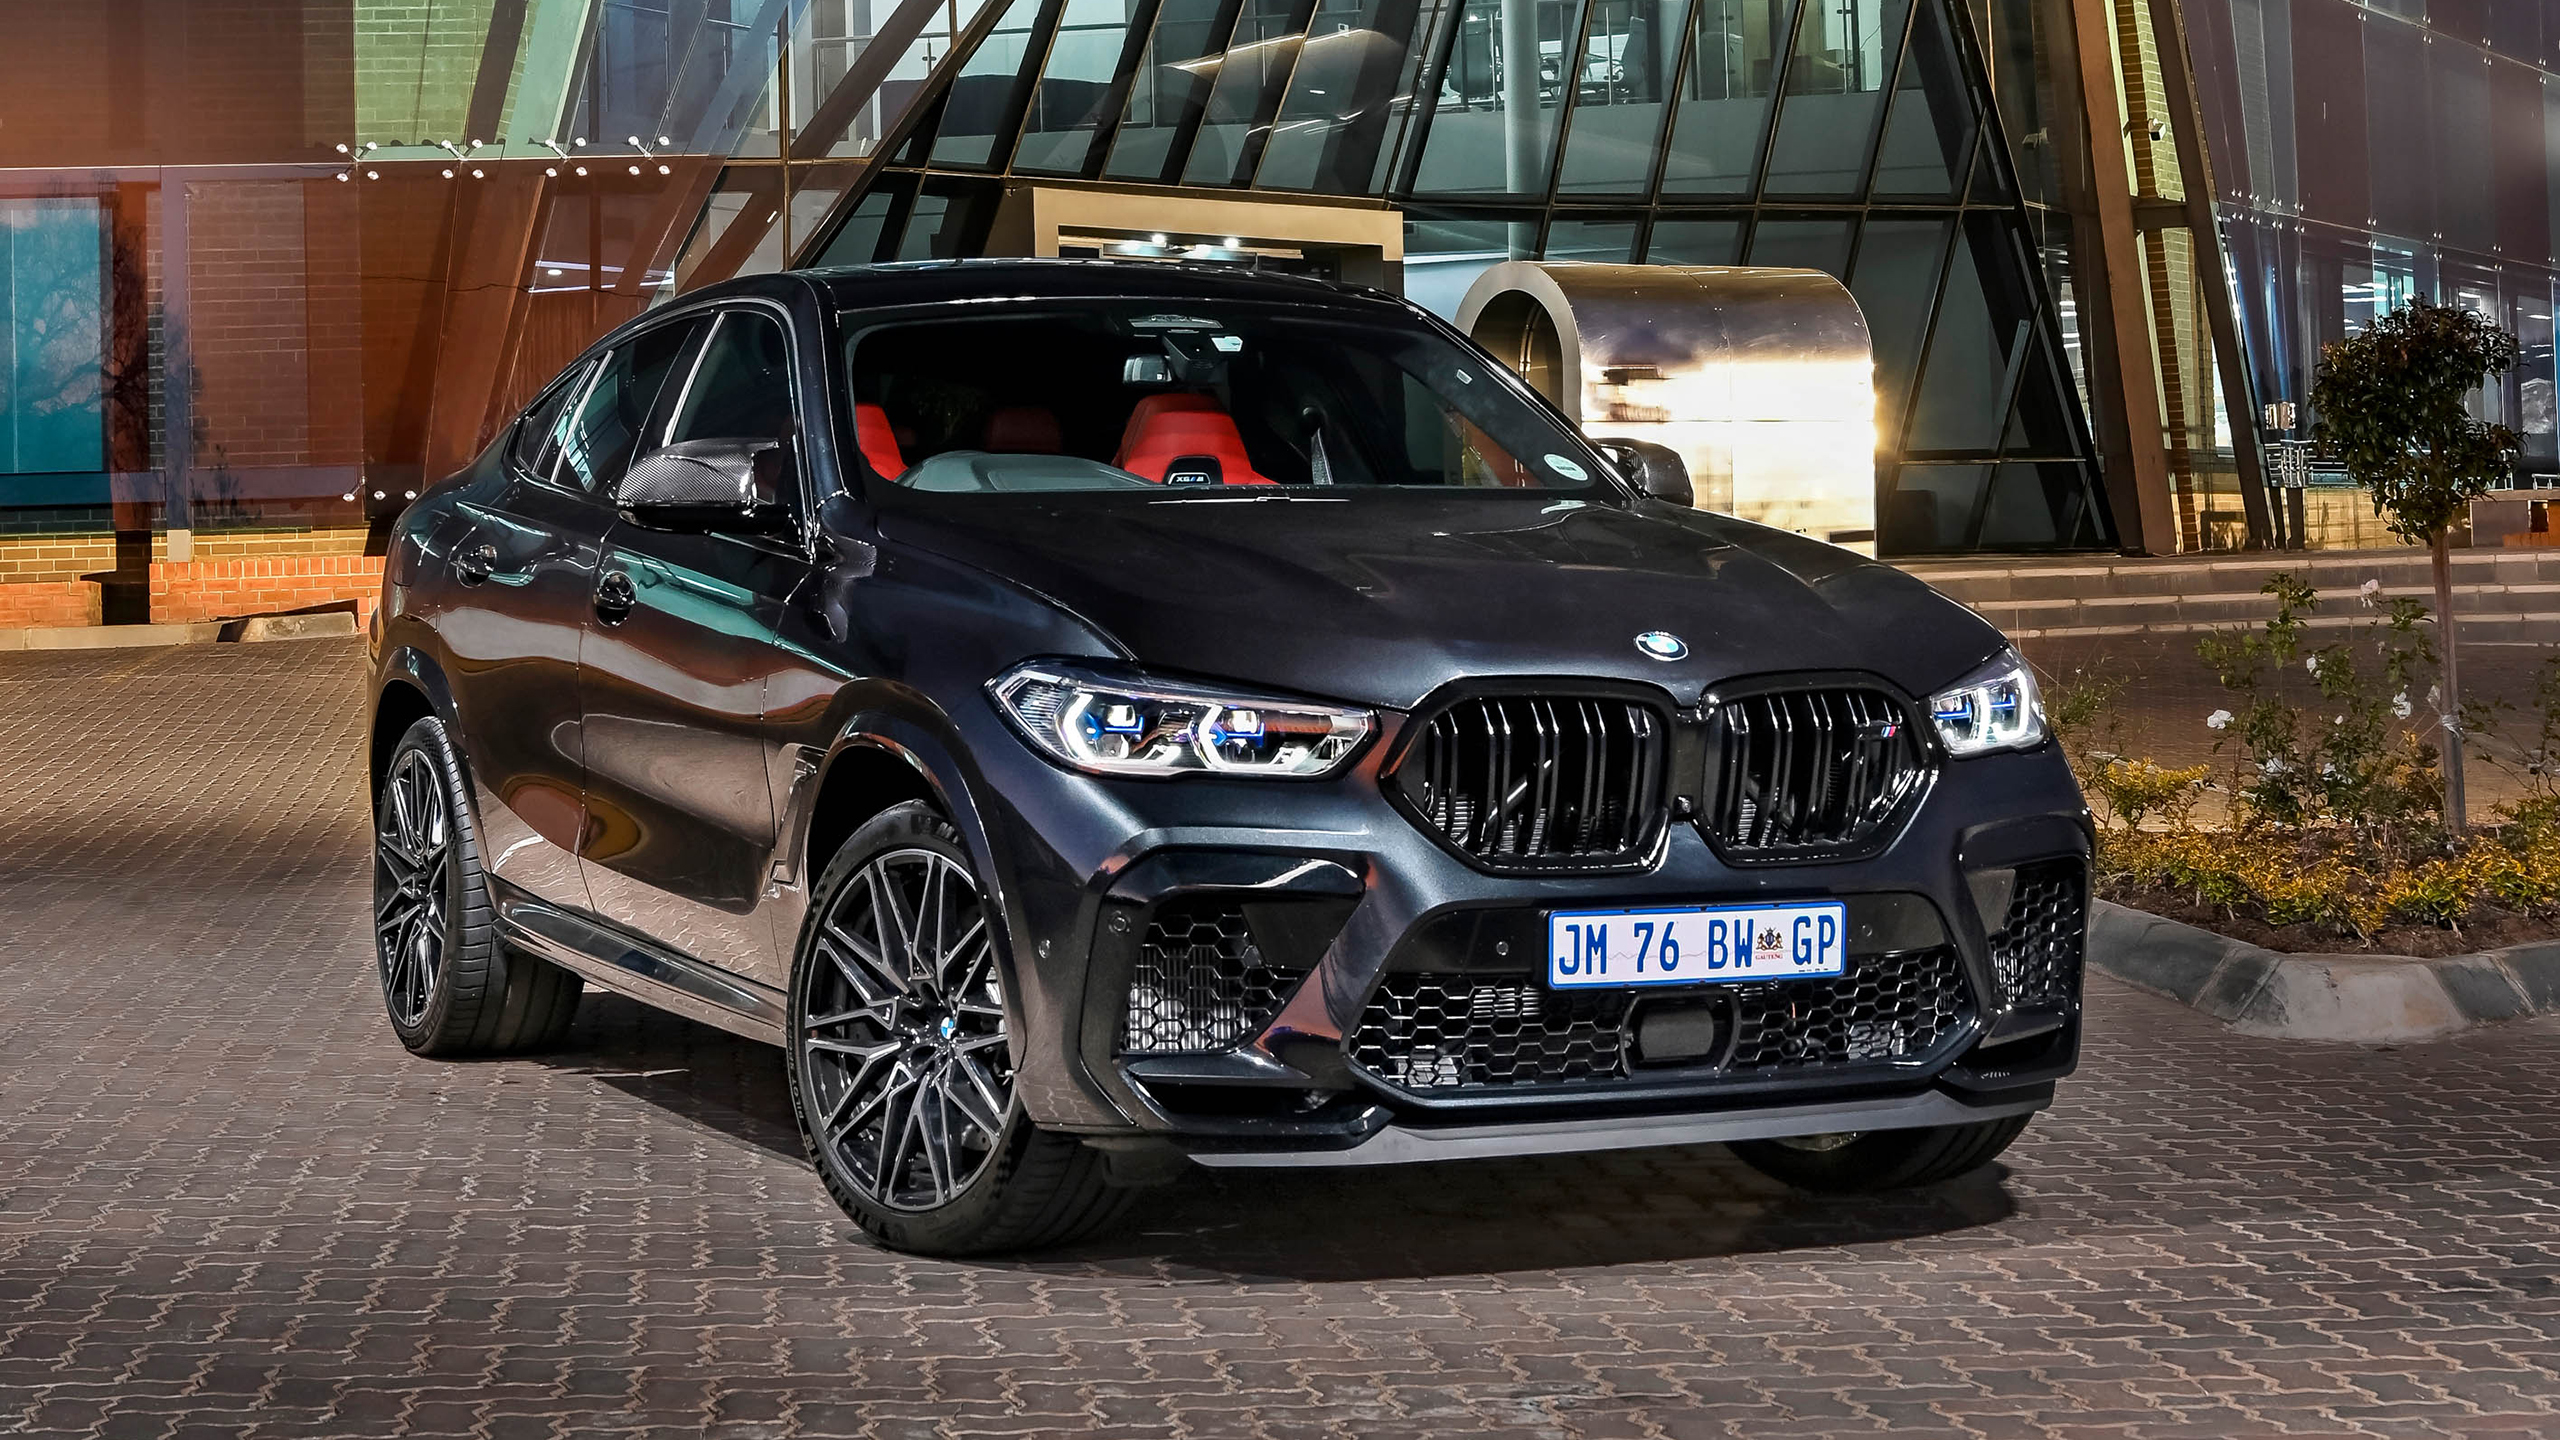 Bmw X6 M Competition 2020 Wallpaper Hd Car Wallpapers Id 15214